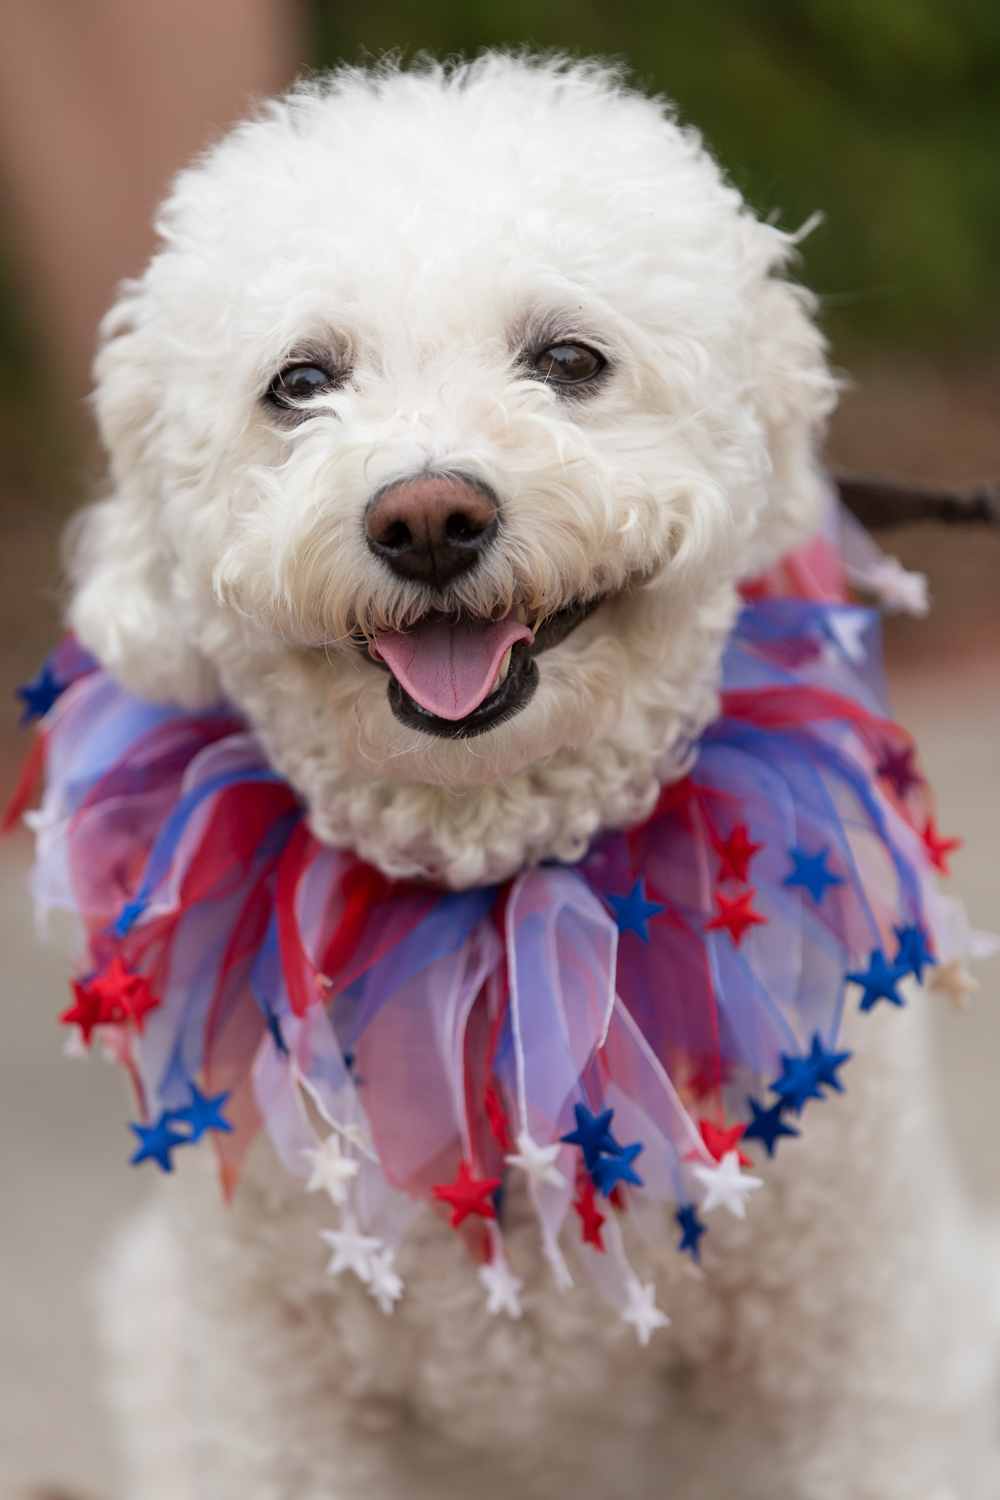 A dog decked out for the annual I'On Community Independence Day Parade in Mt Pleasant, South Carolina, July 4, 2012.